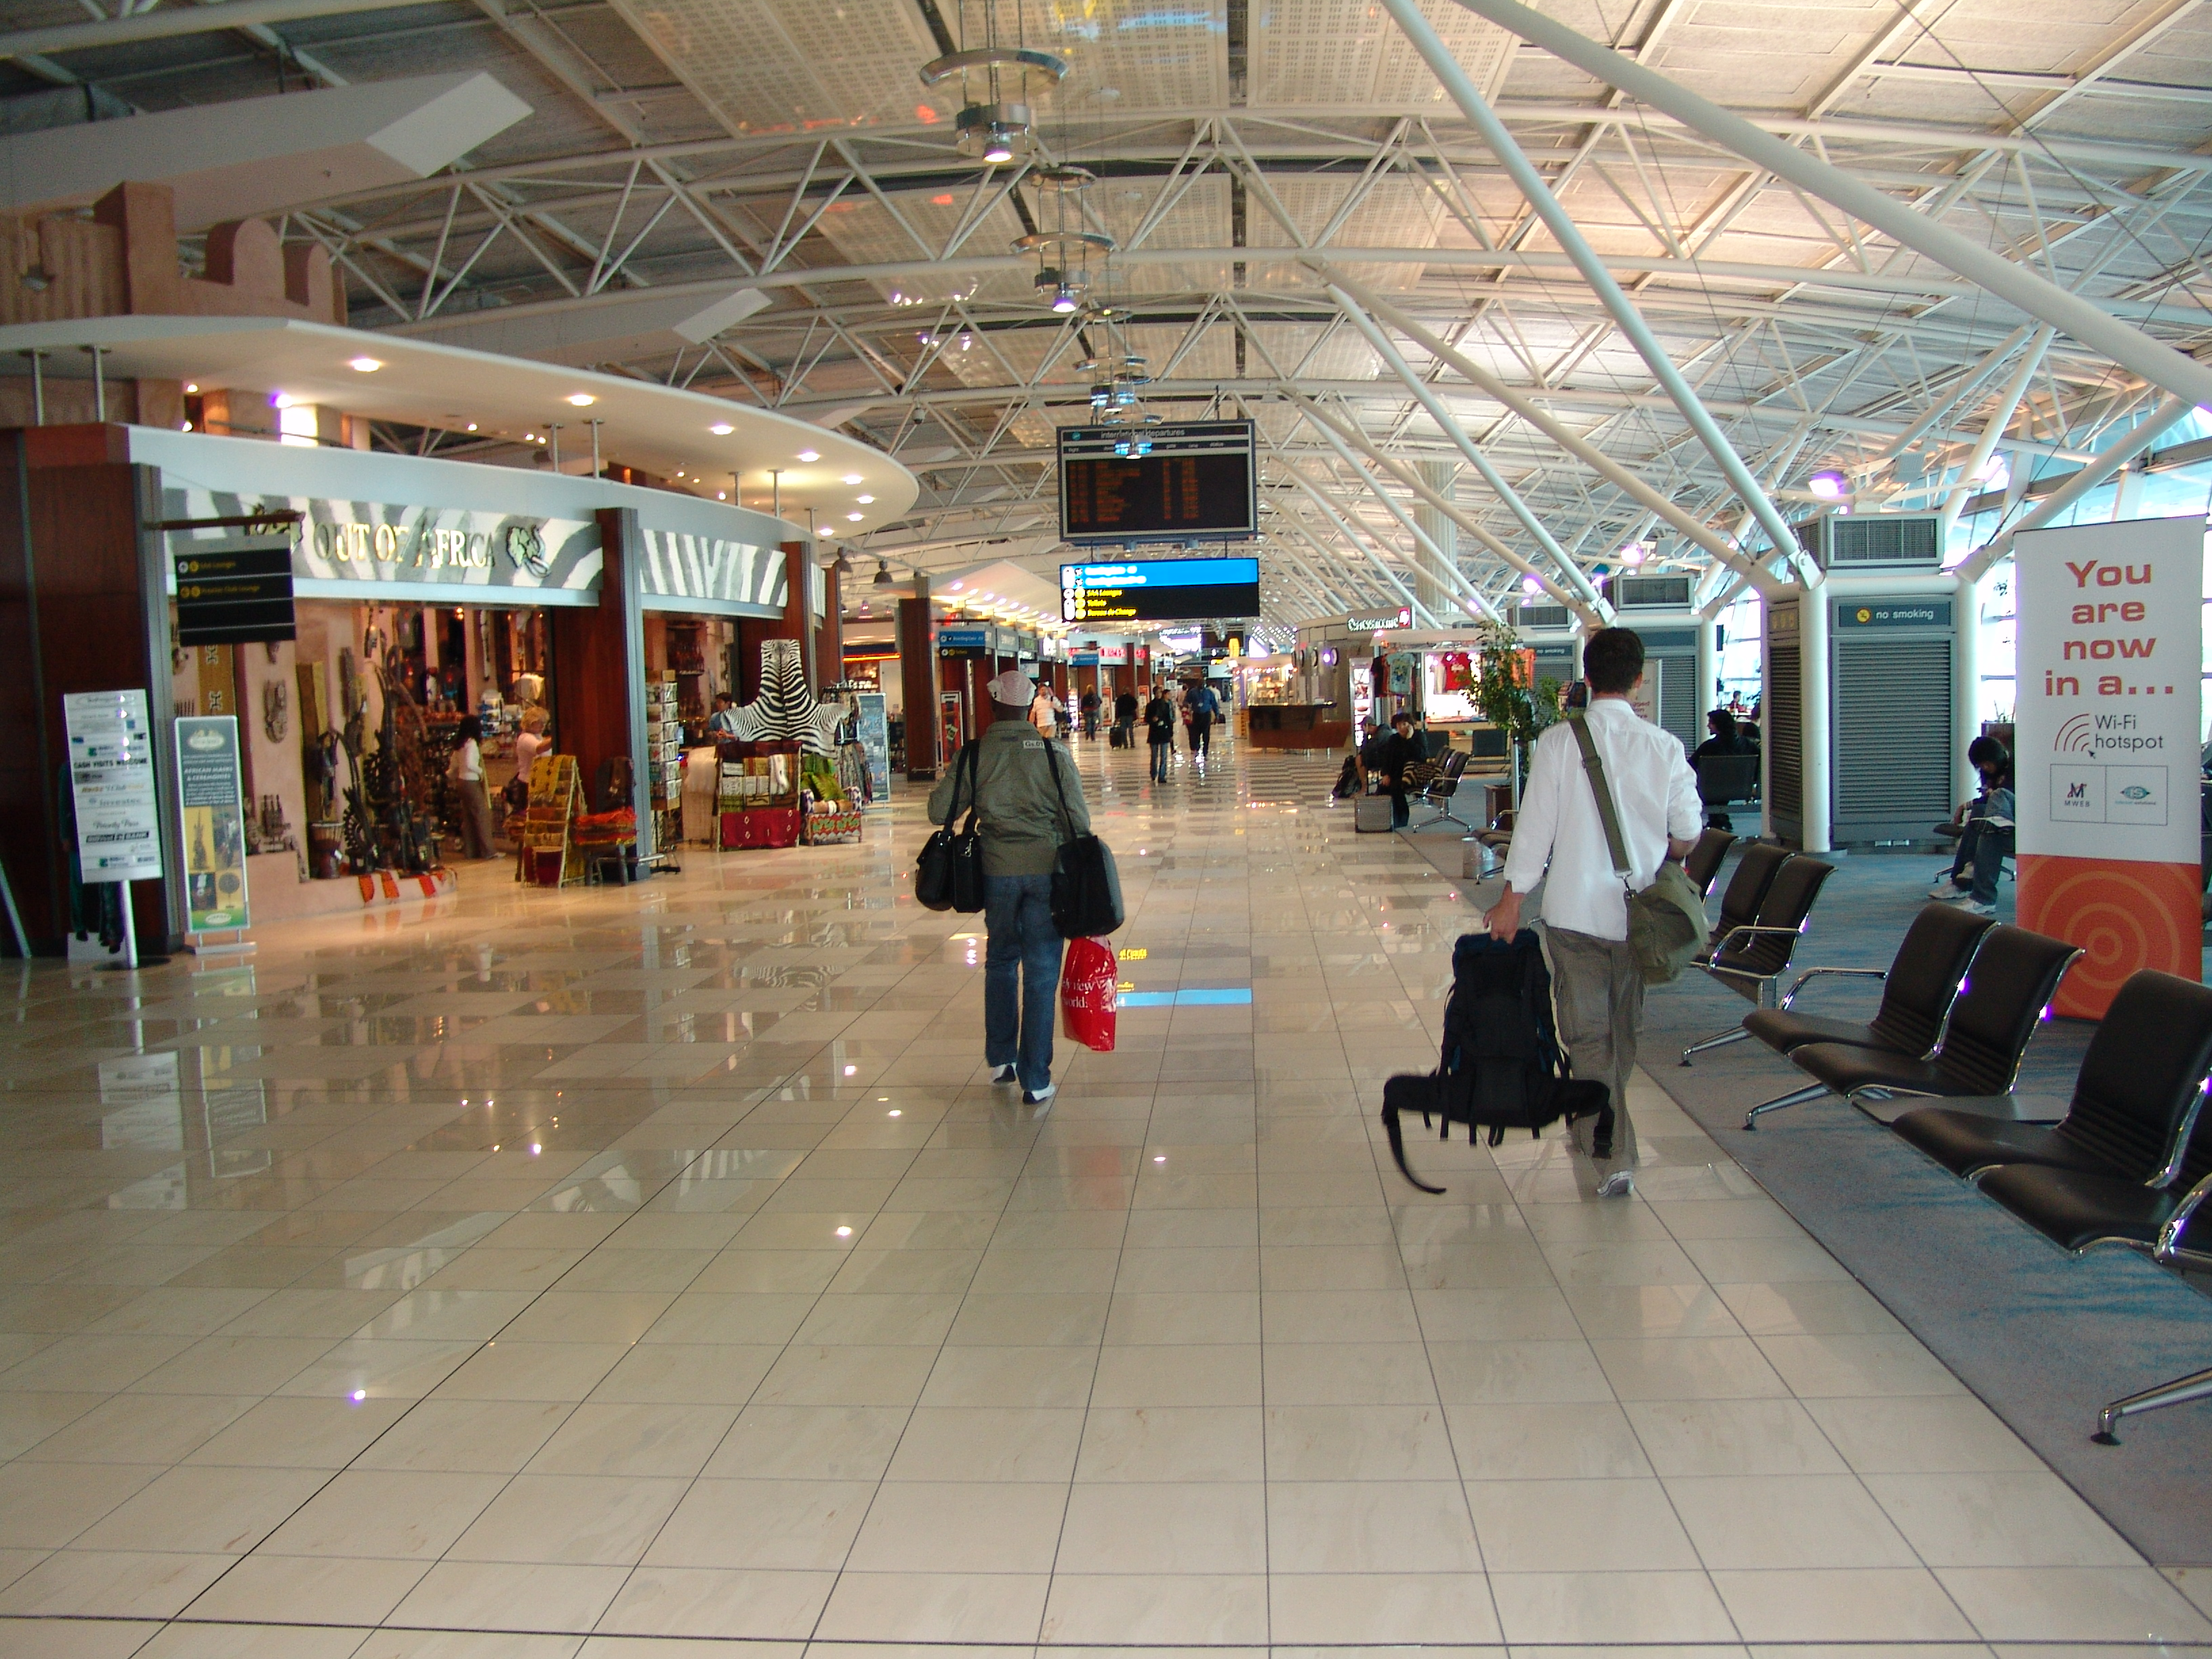 International Departures At Cape Town Airport